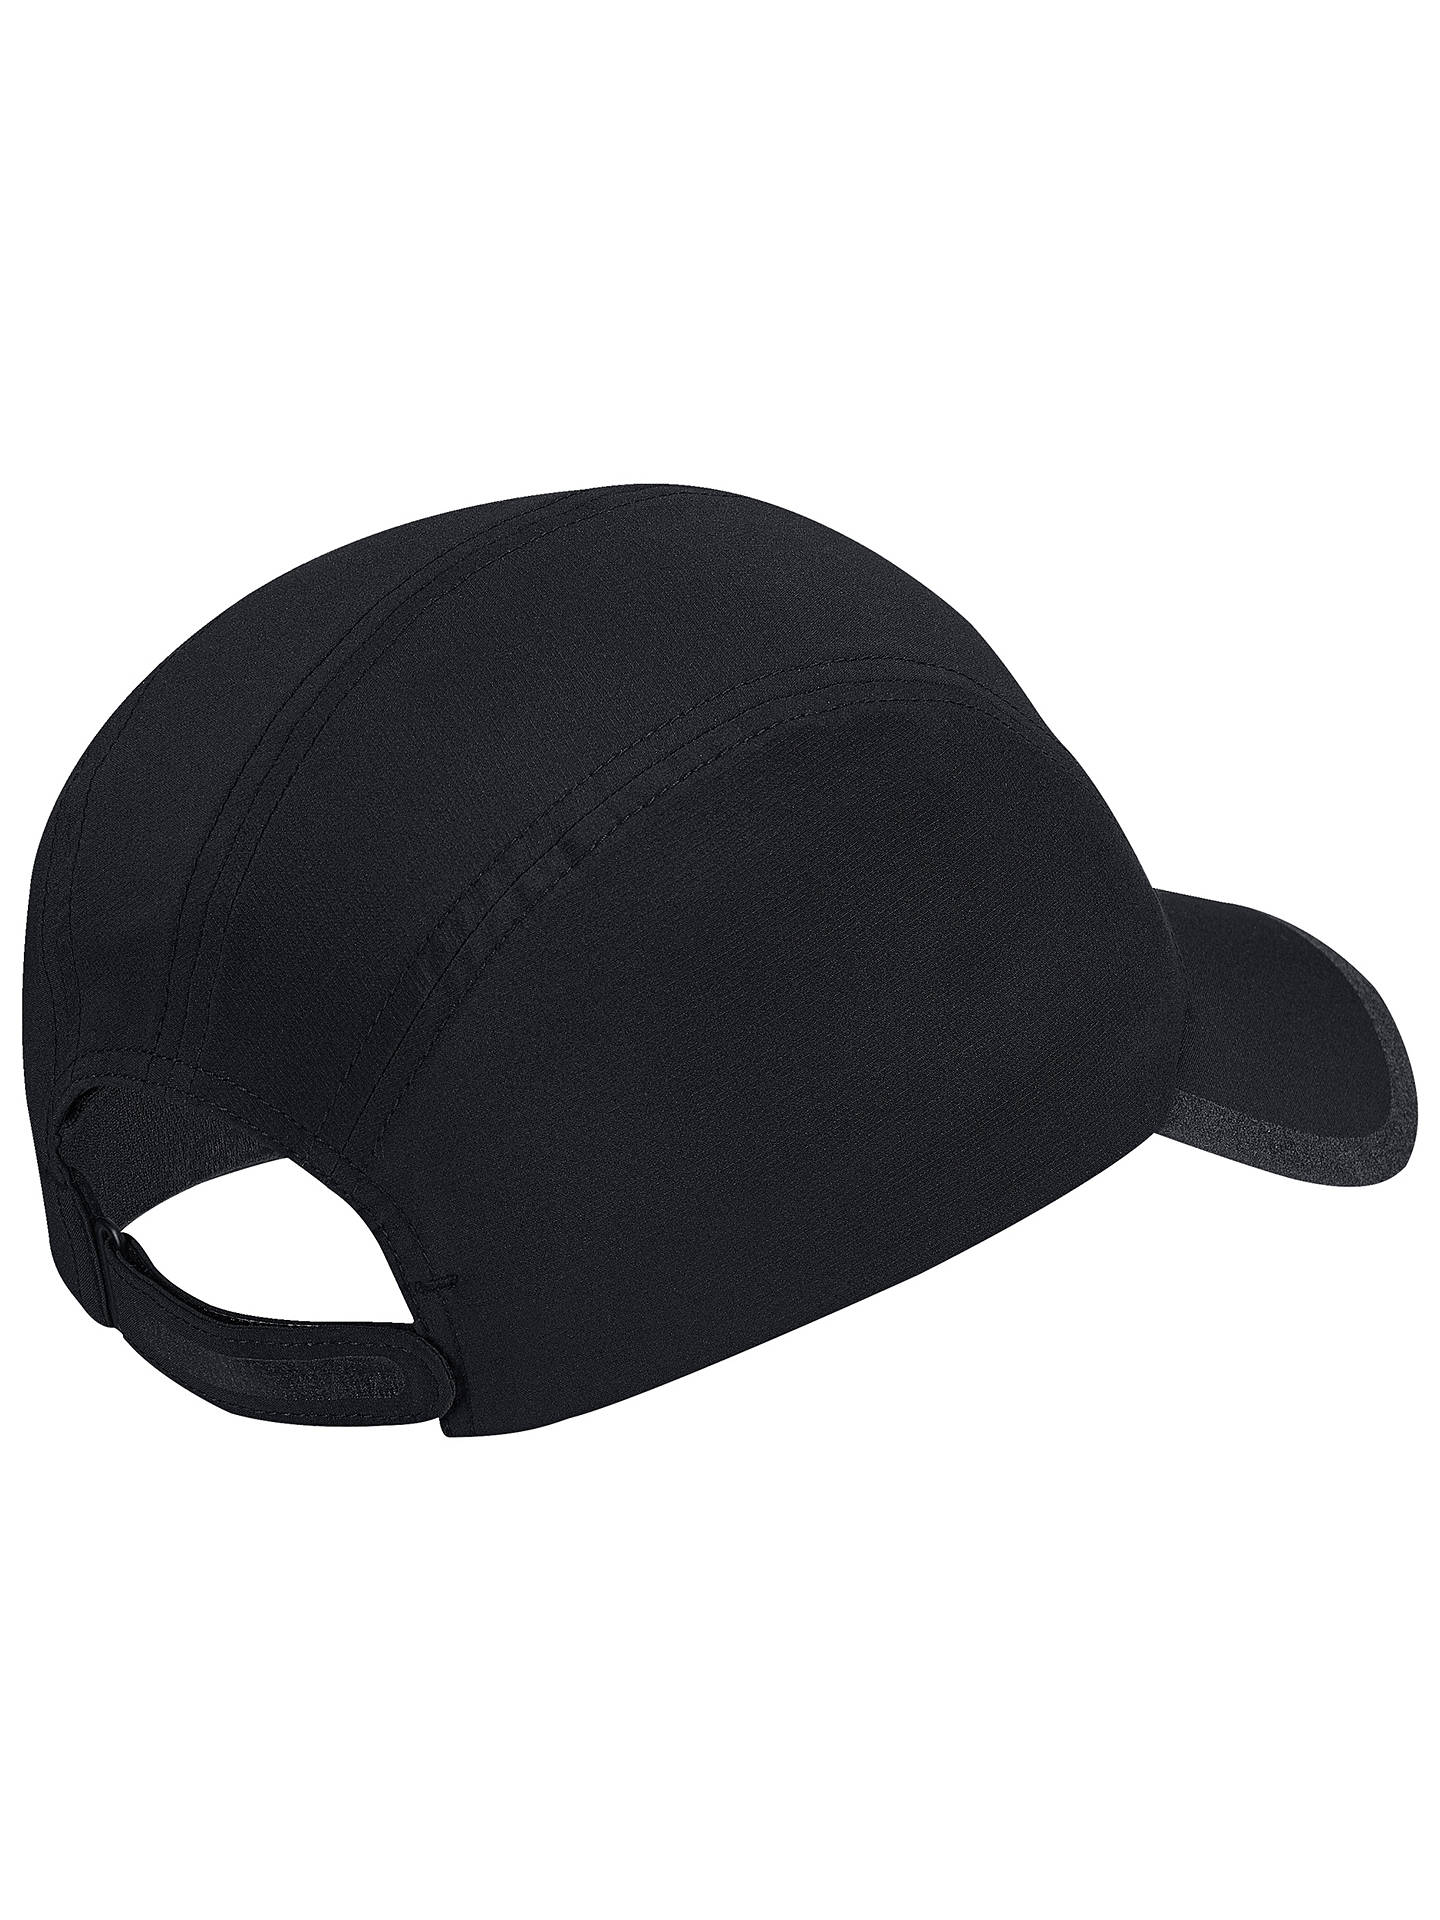 Buyadidas Climalite Running Cap, One Size, Black/Reflective Silver Online at johnlewis.com